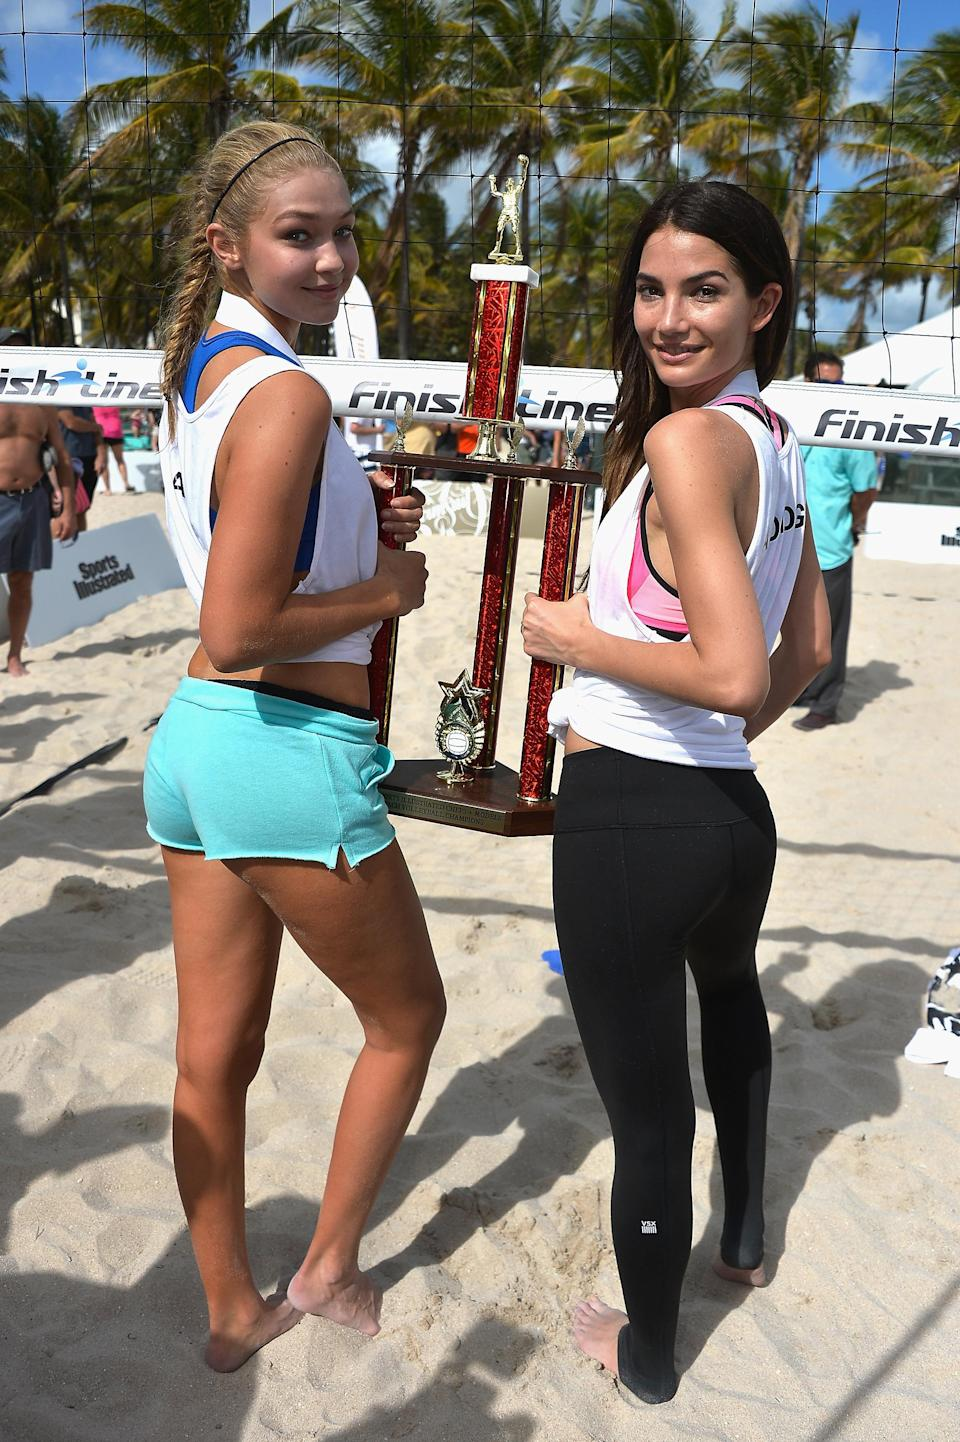 Gigi Hadid and Lily Aldridge attend the Sports Illustrated Swimsuit 2014 Beach Volleyball event.